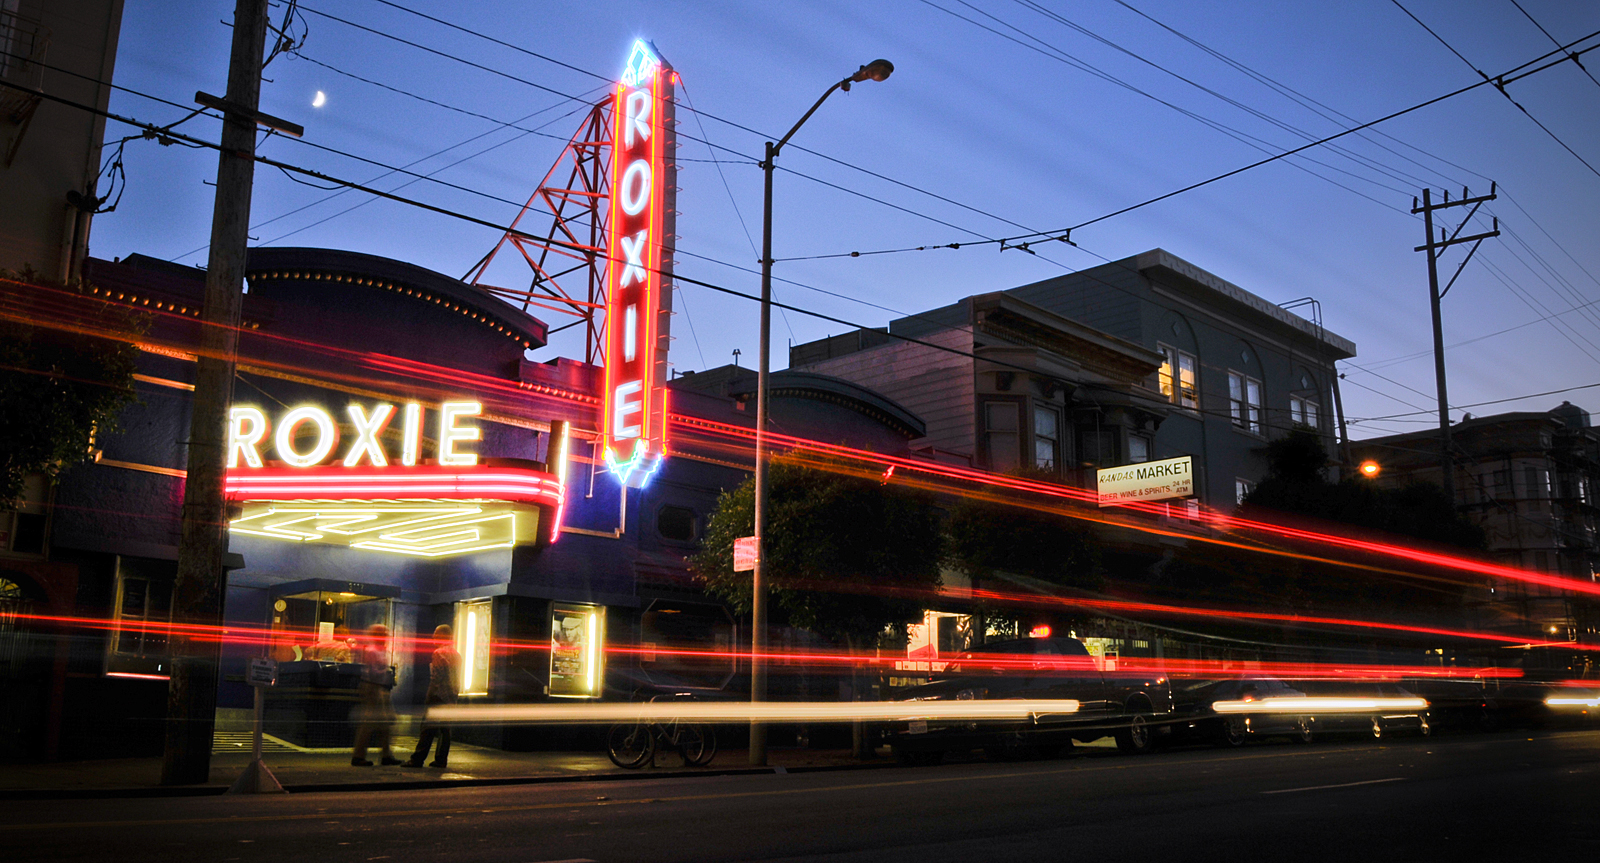 The landmark Roxie Theater is a non-profit cinema that screens obscure indie movies and hosts film-related special events.